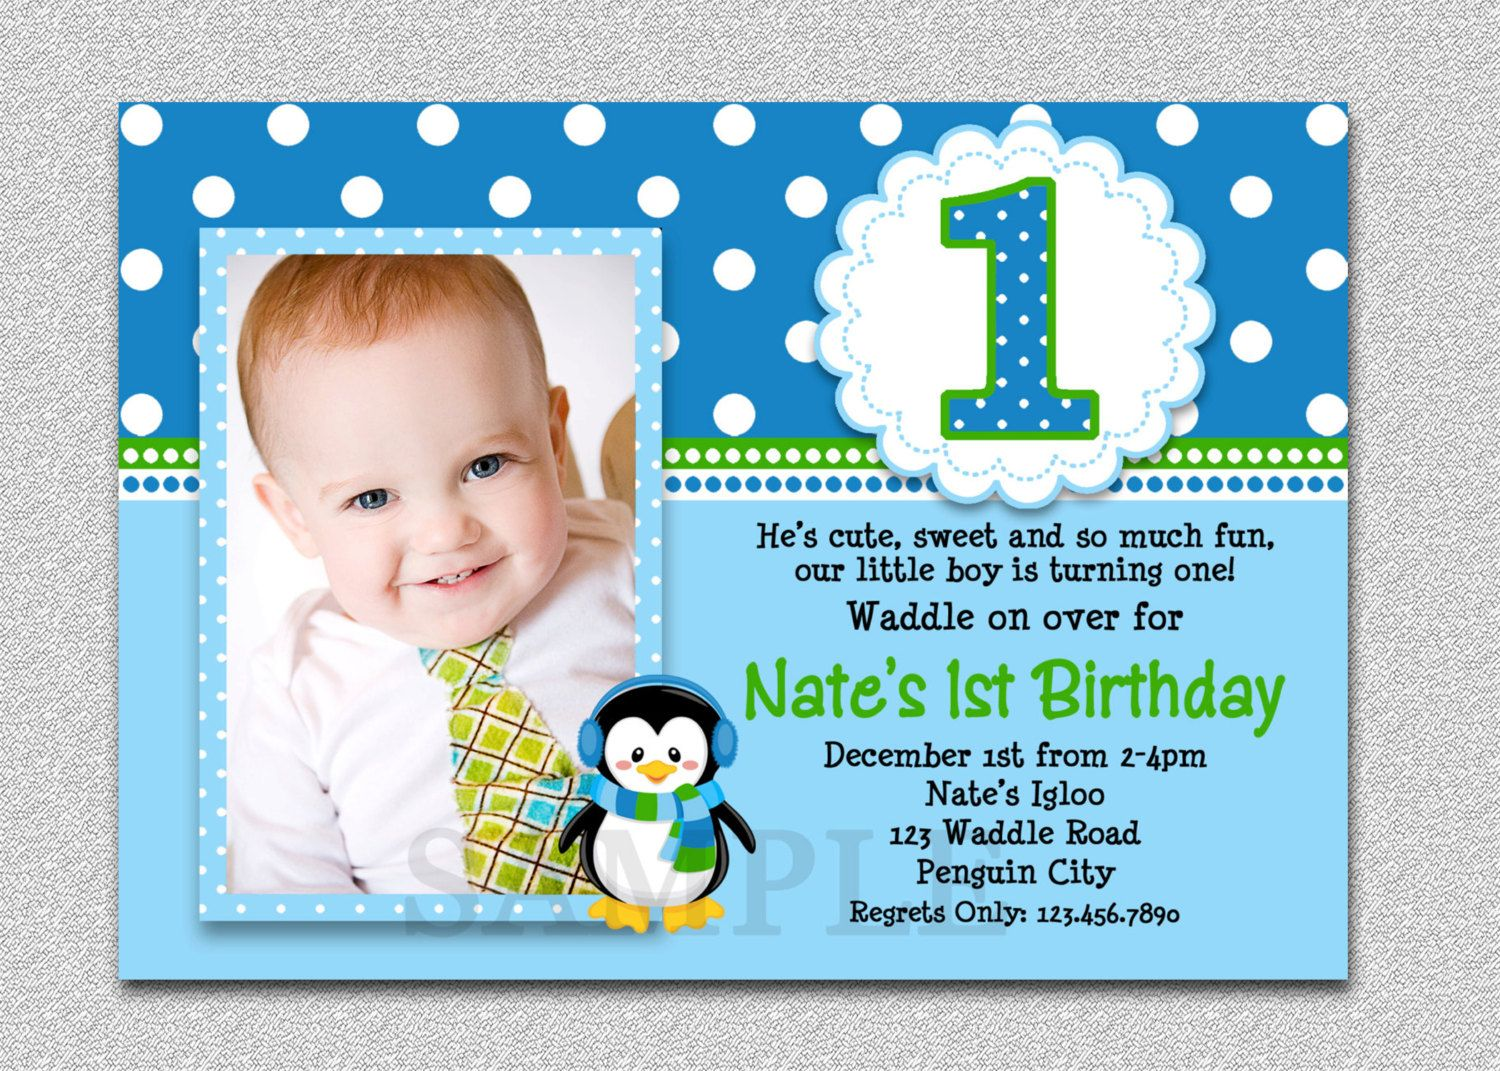 Cool The 1st Birthday Invitations Boy Ideas Check More At